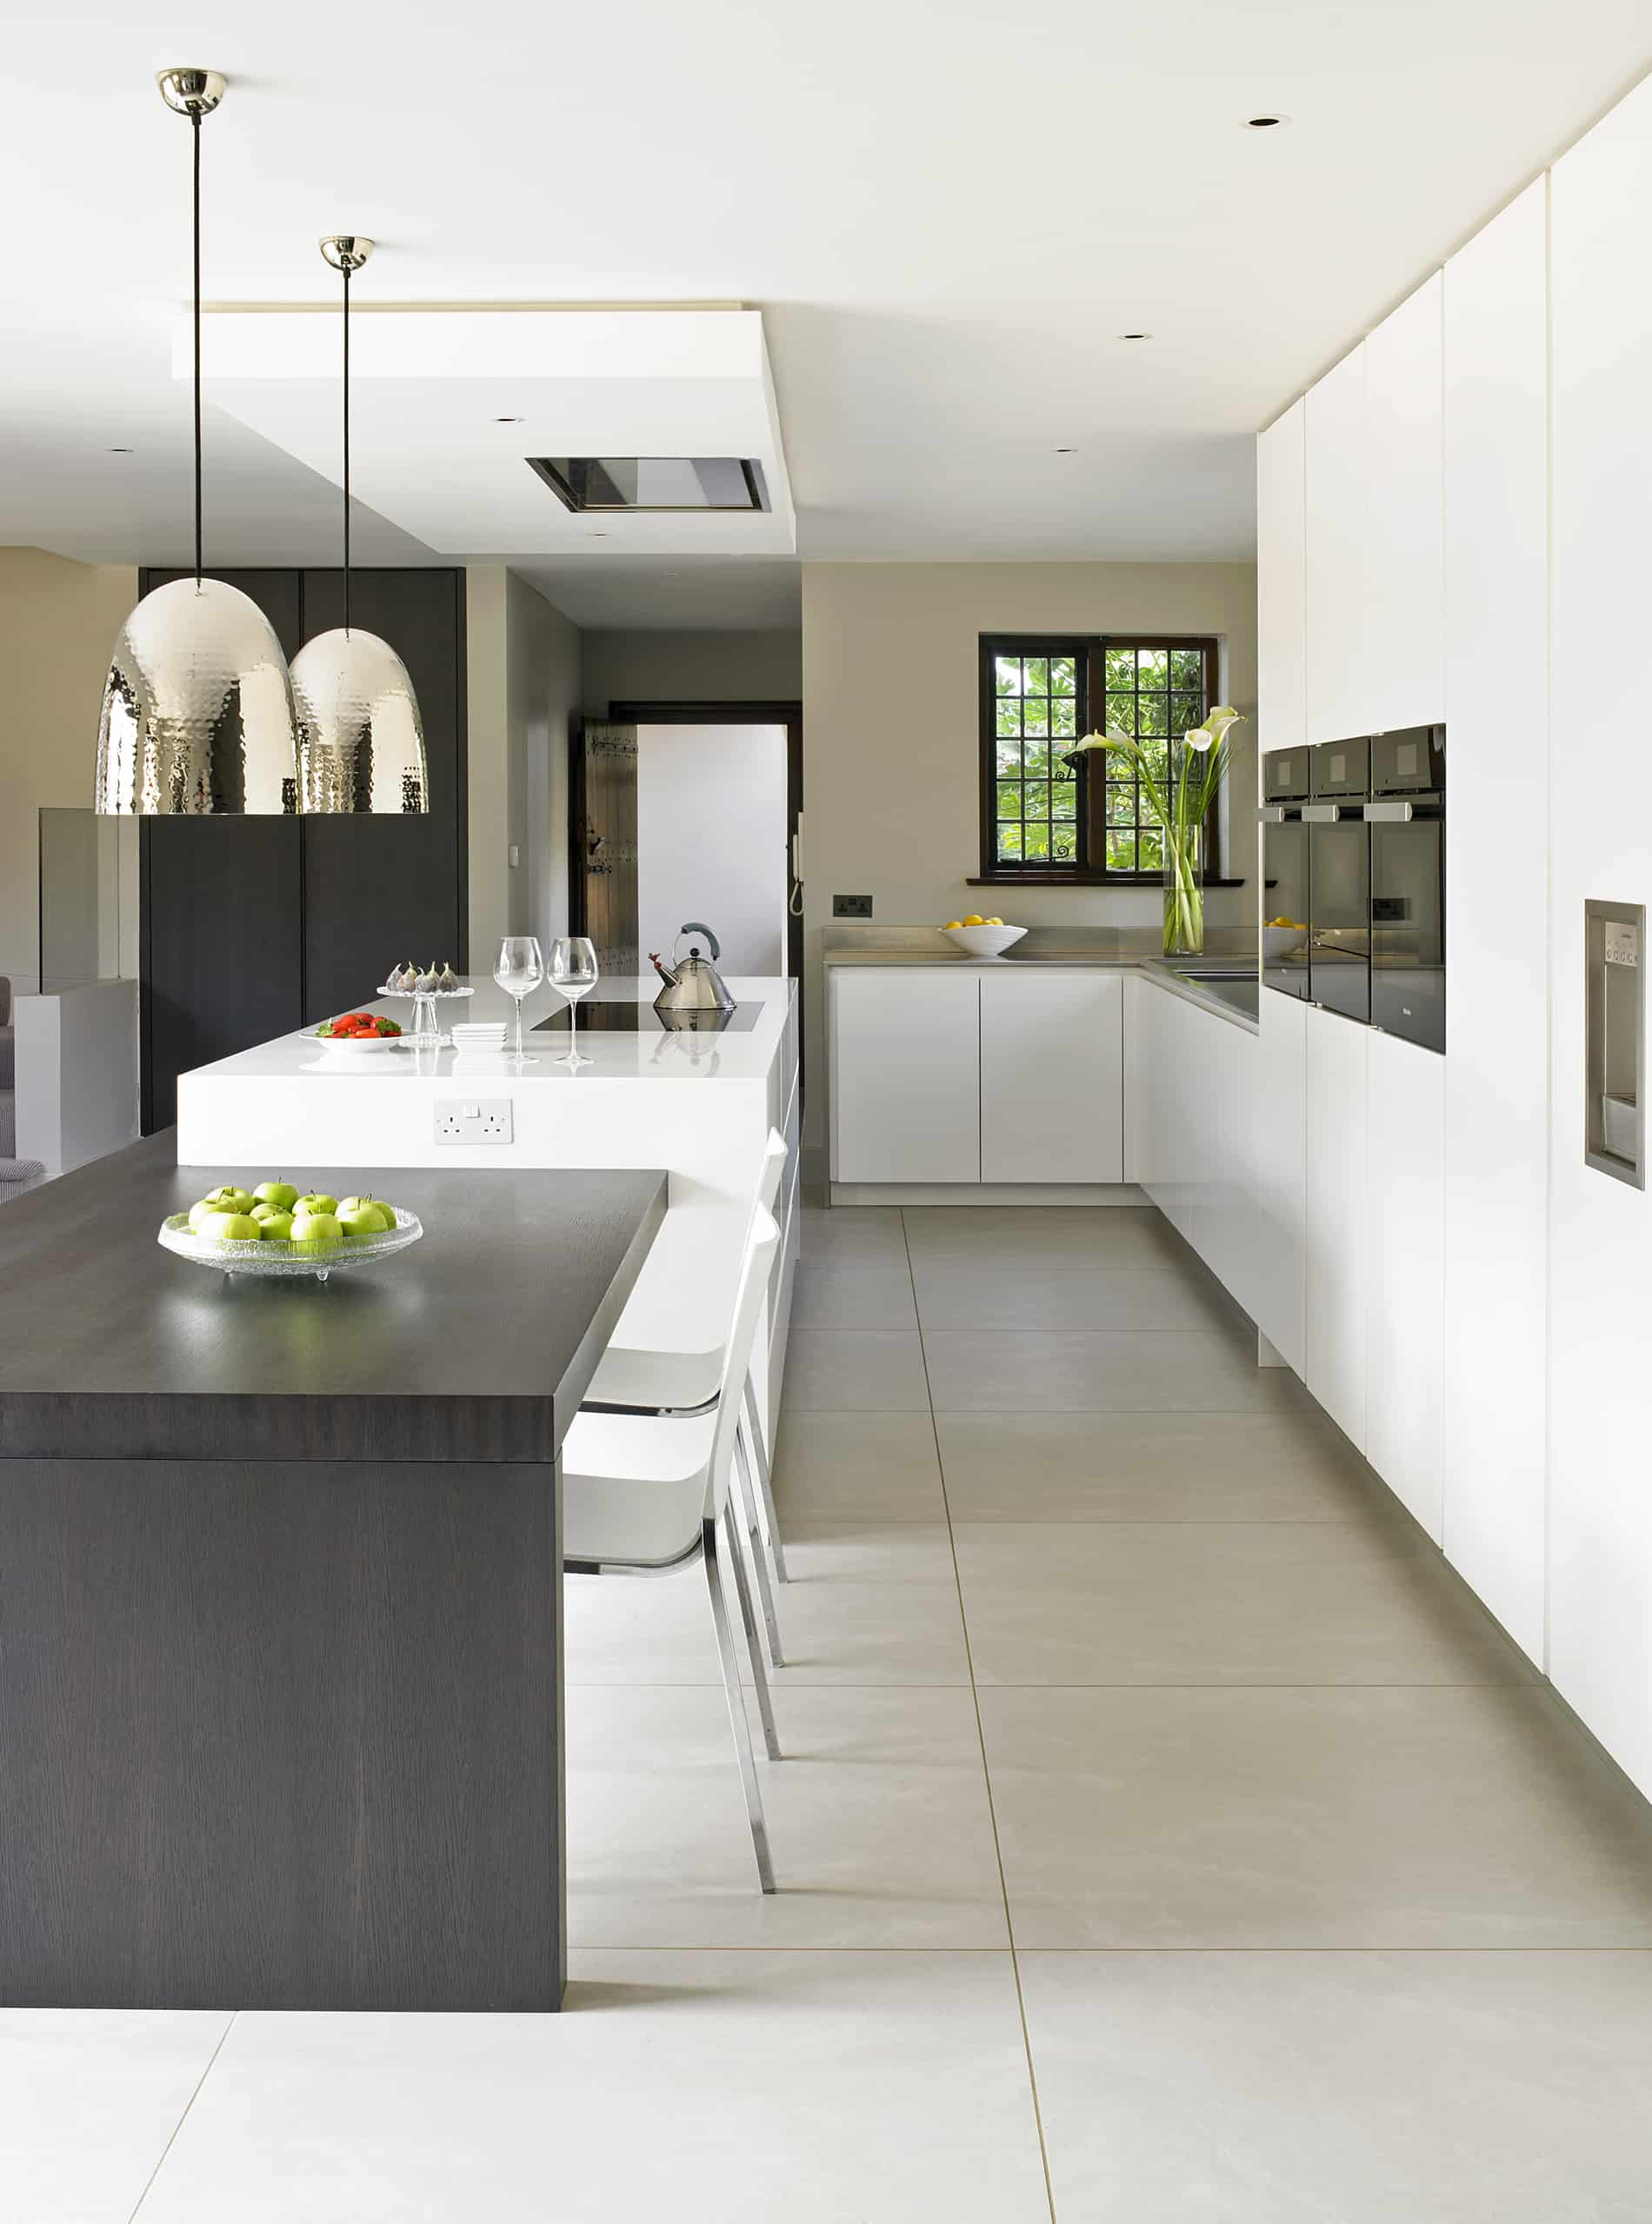 Bespoke Kitchens In Surrey South West London Brayer Design